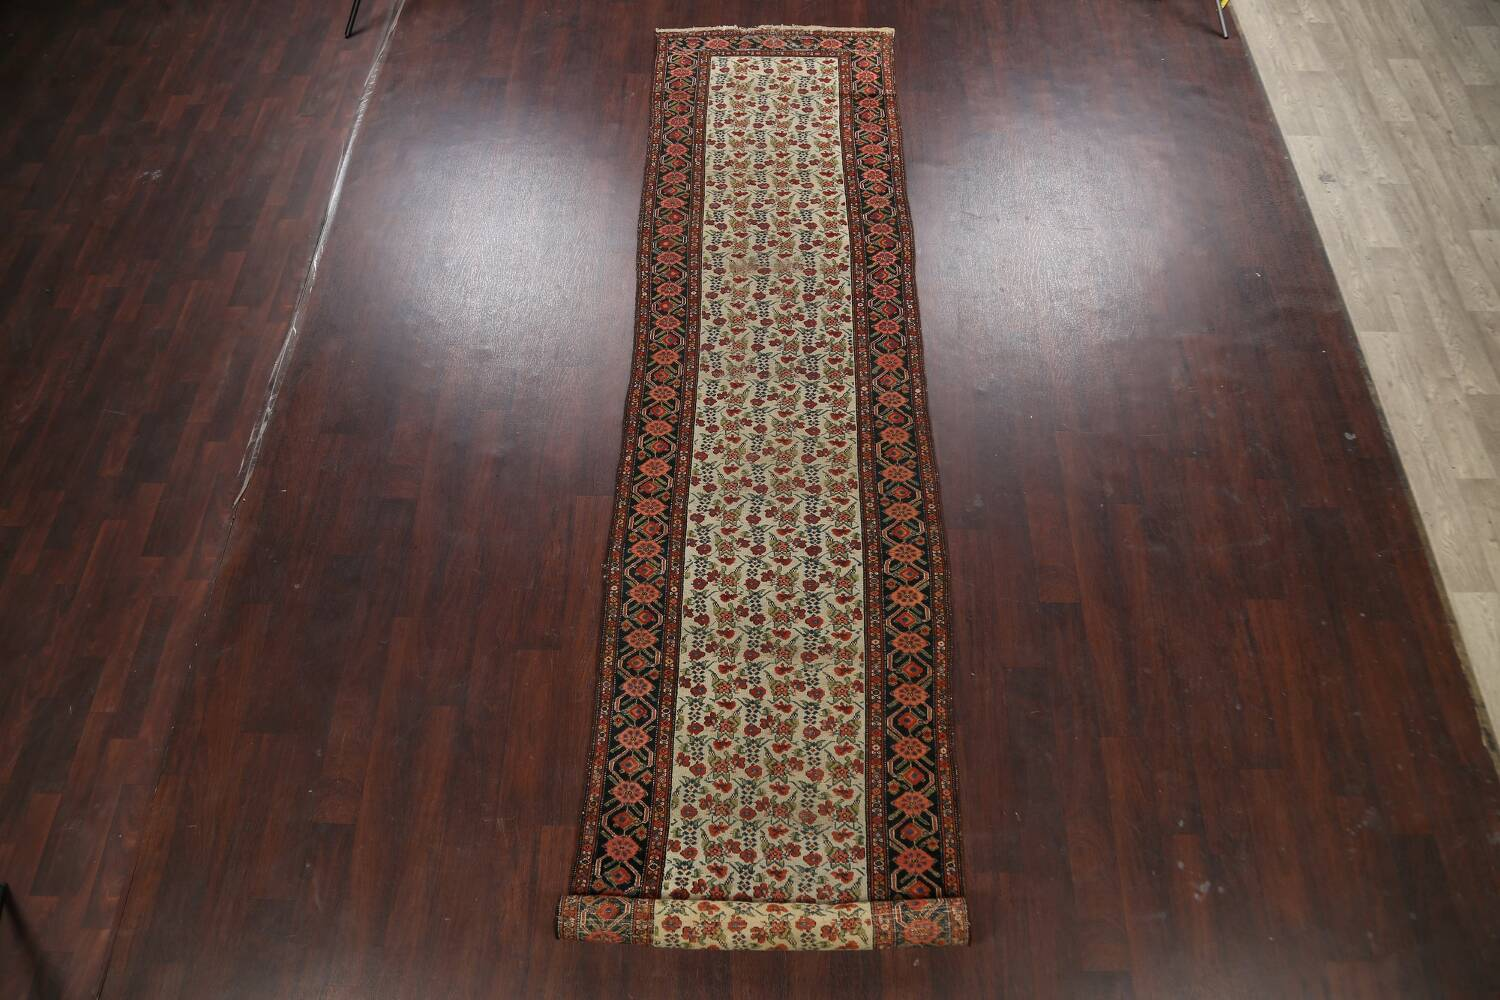 Pre-1900 Antique Vegetable Dye Malayer Persian Runner Rug 3x16 image 2